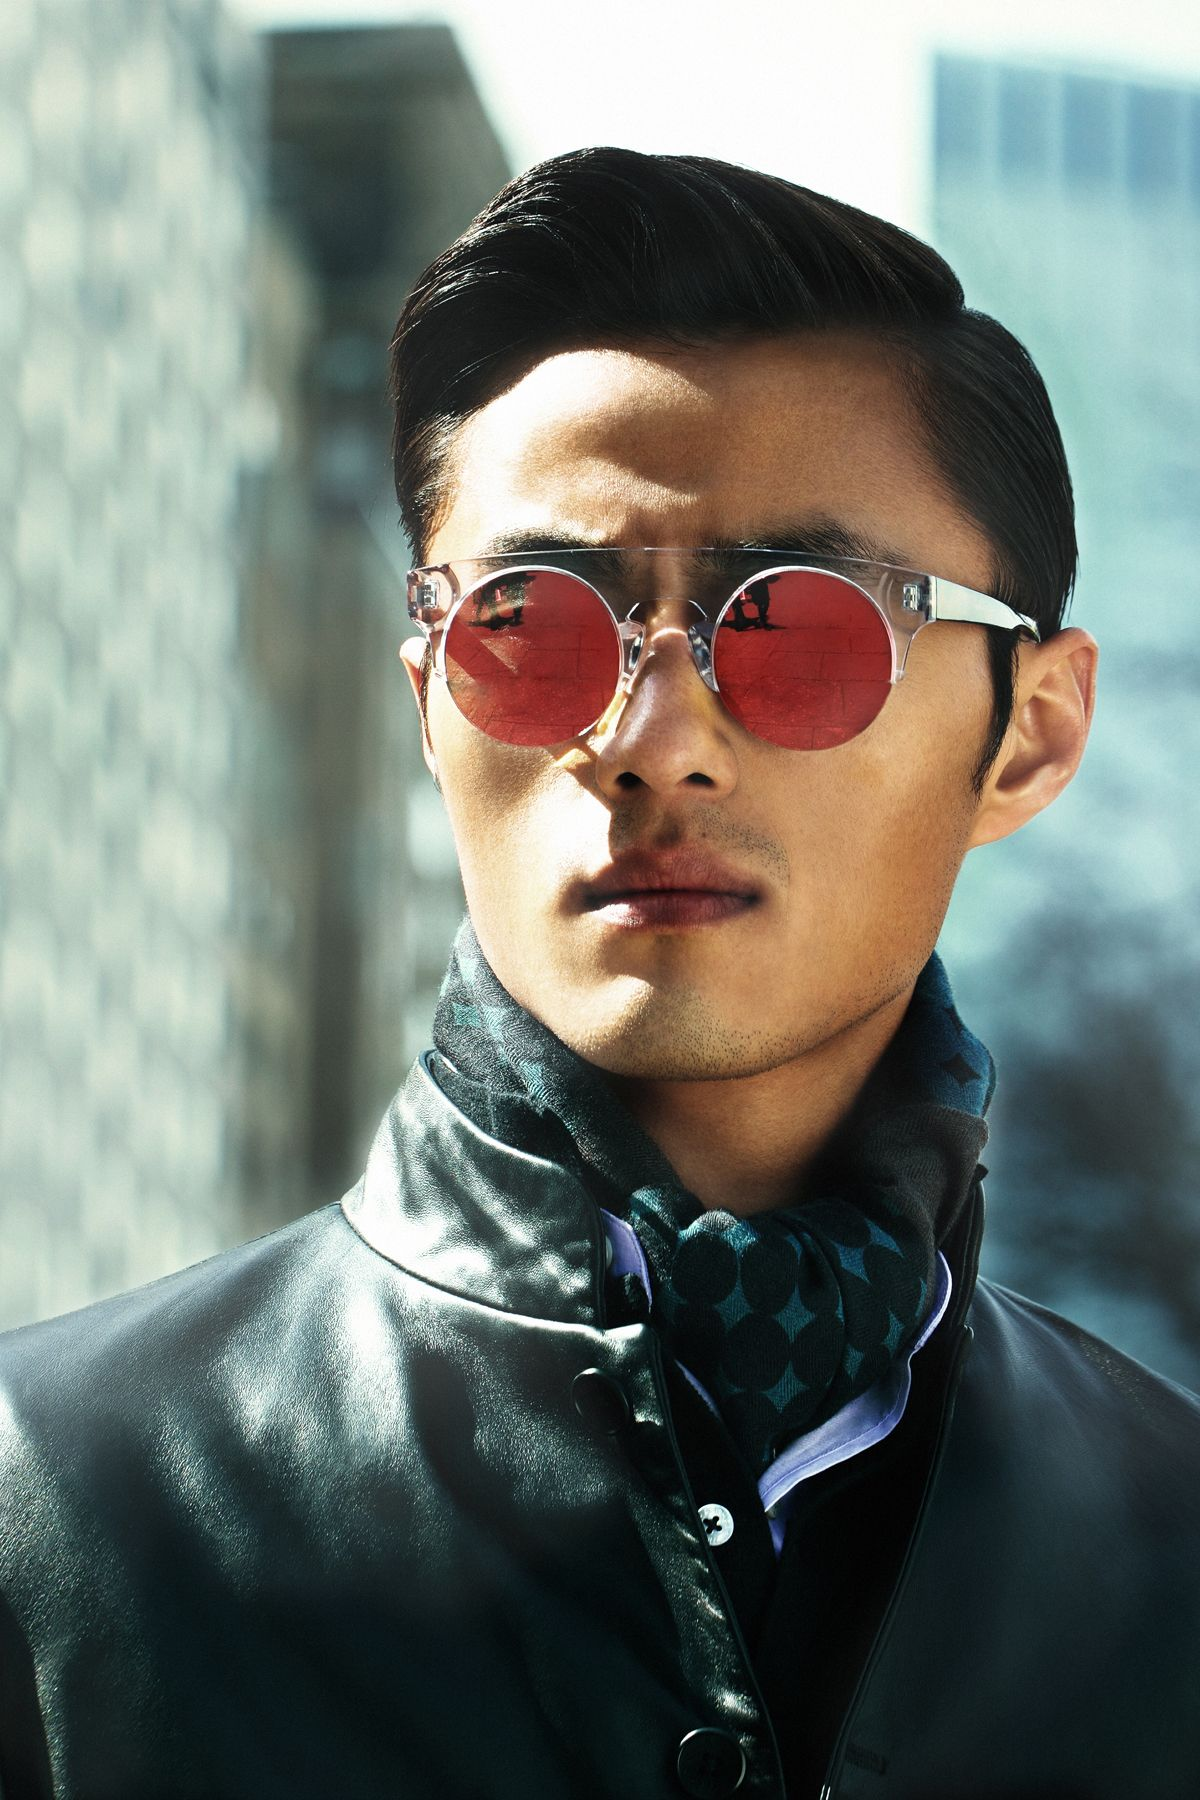 aa8ba54fec8 Zhao Lei Authentic Chinese Round Glasses Campaign - collaboration Shanghai  Tang x AM Eyewear